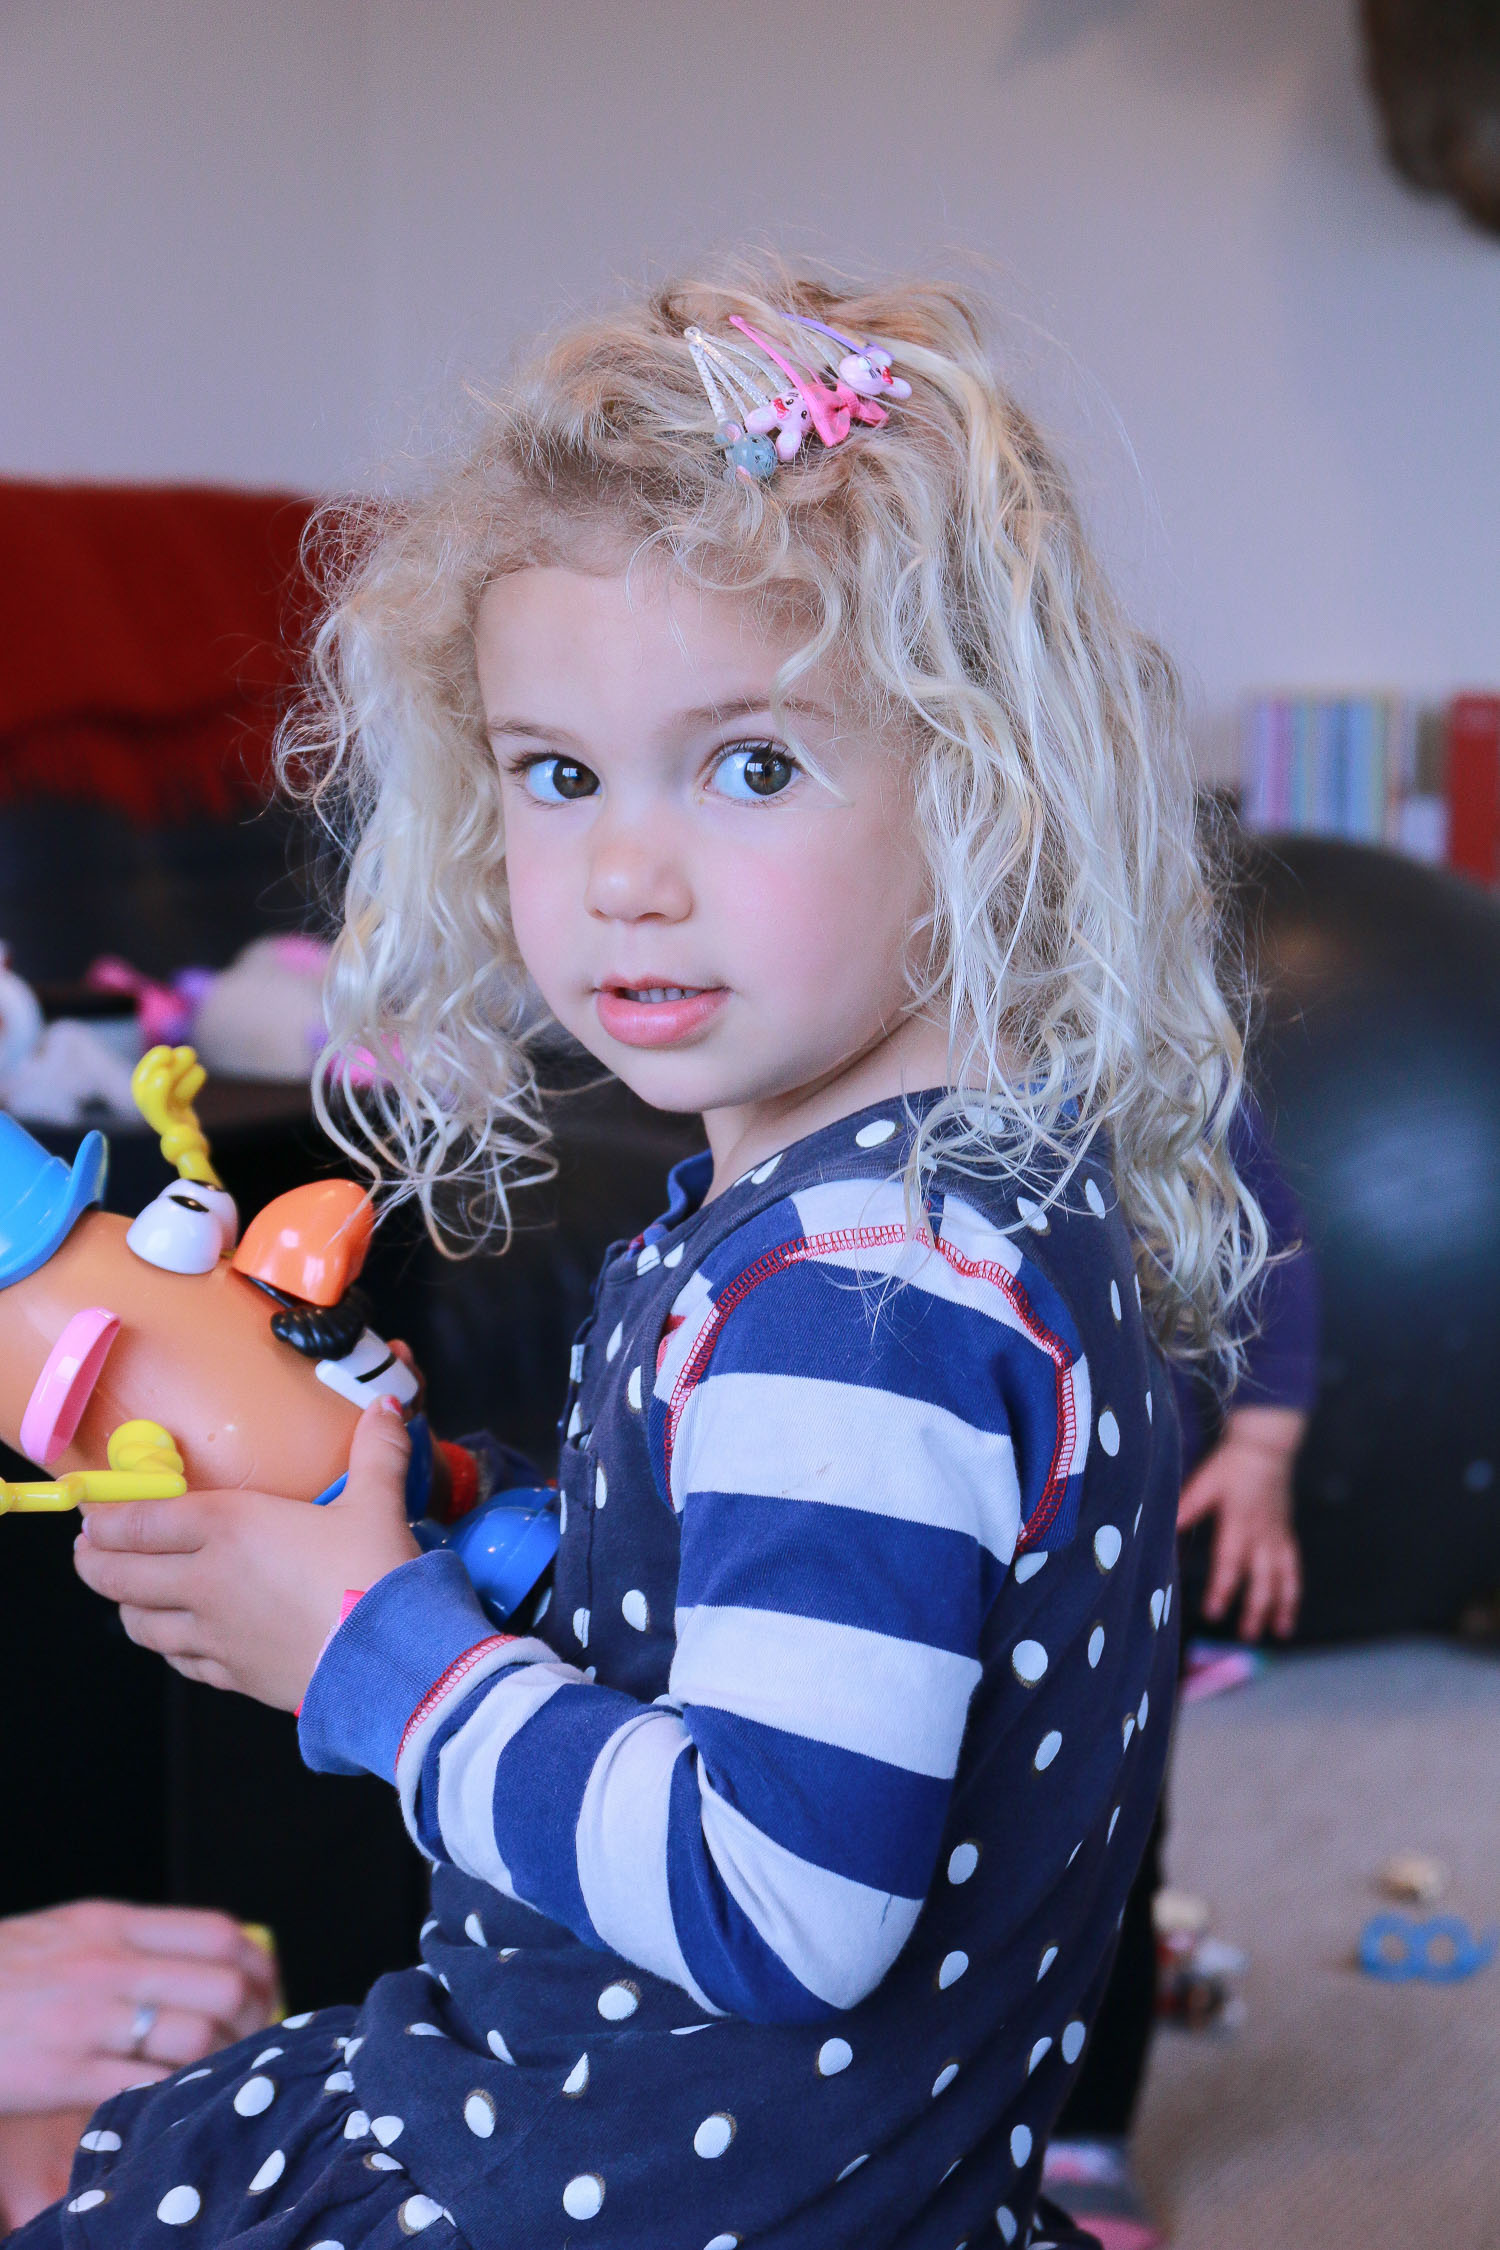 little-girl-playing-in-lounge-clips-in-hair-with-mr-potato-head